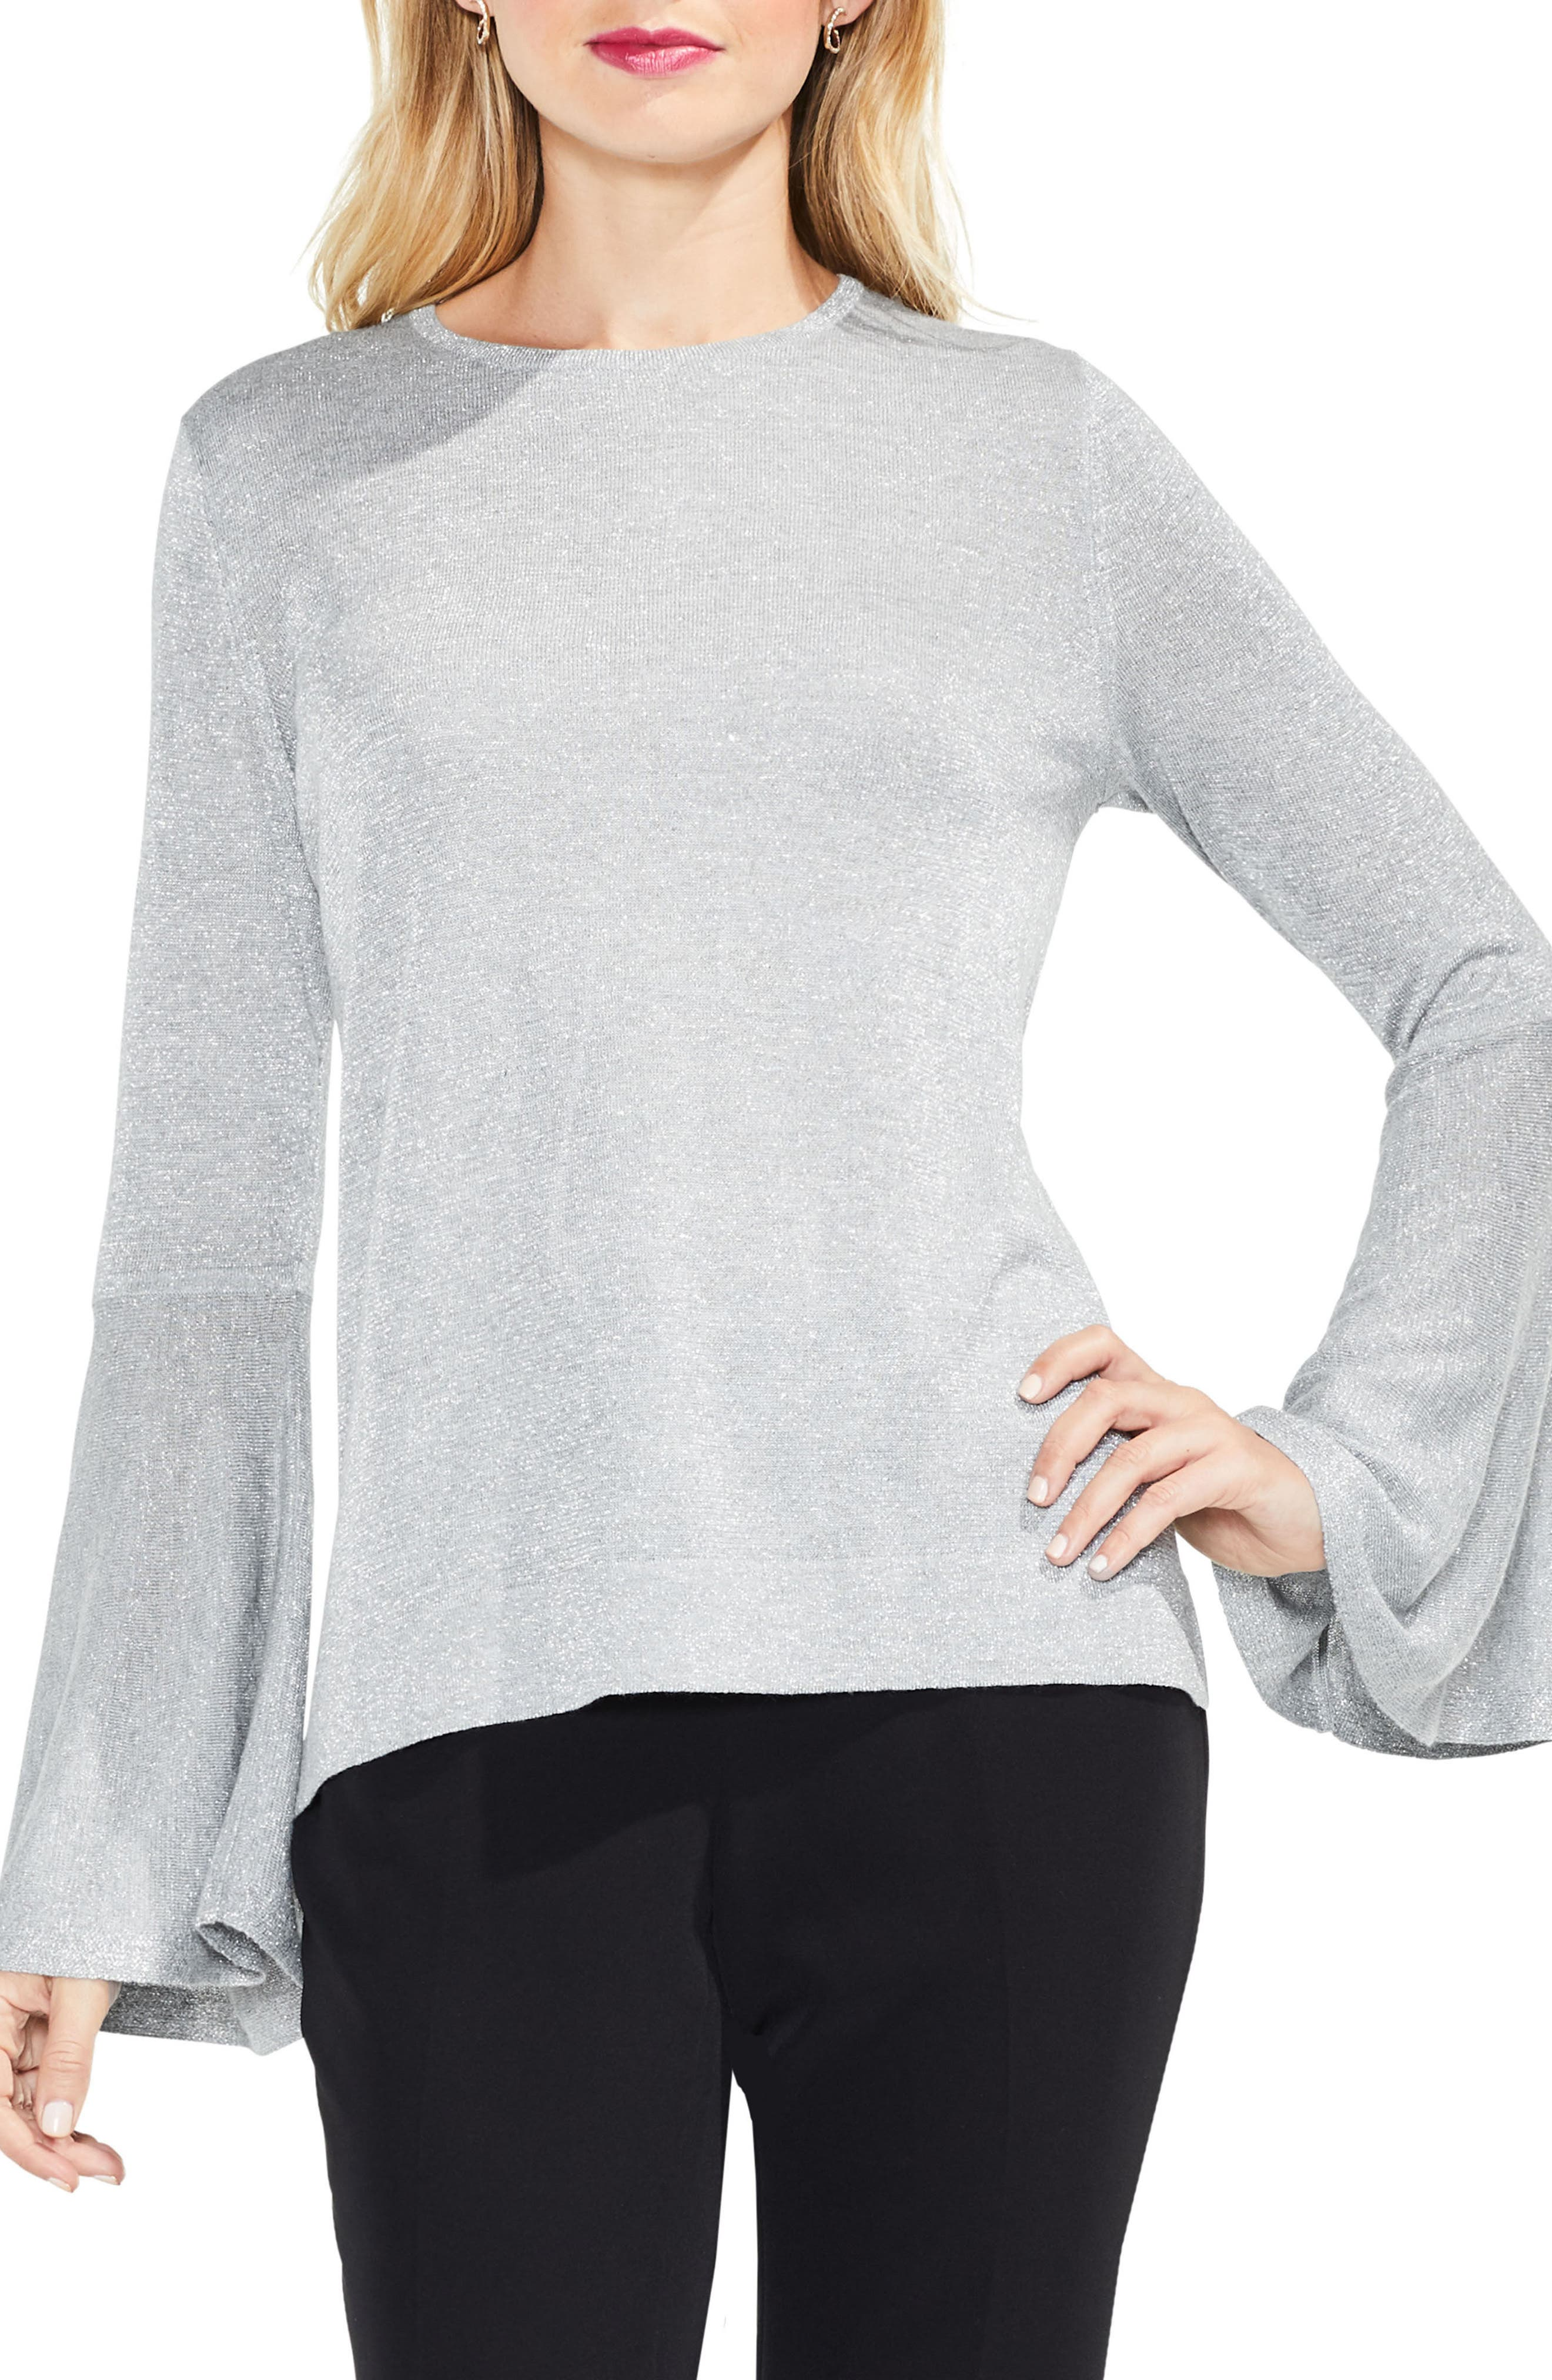 Bell Sleeve Sweater,                         Main,                         color, Light Heather Grey